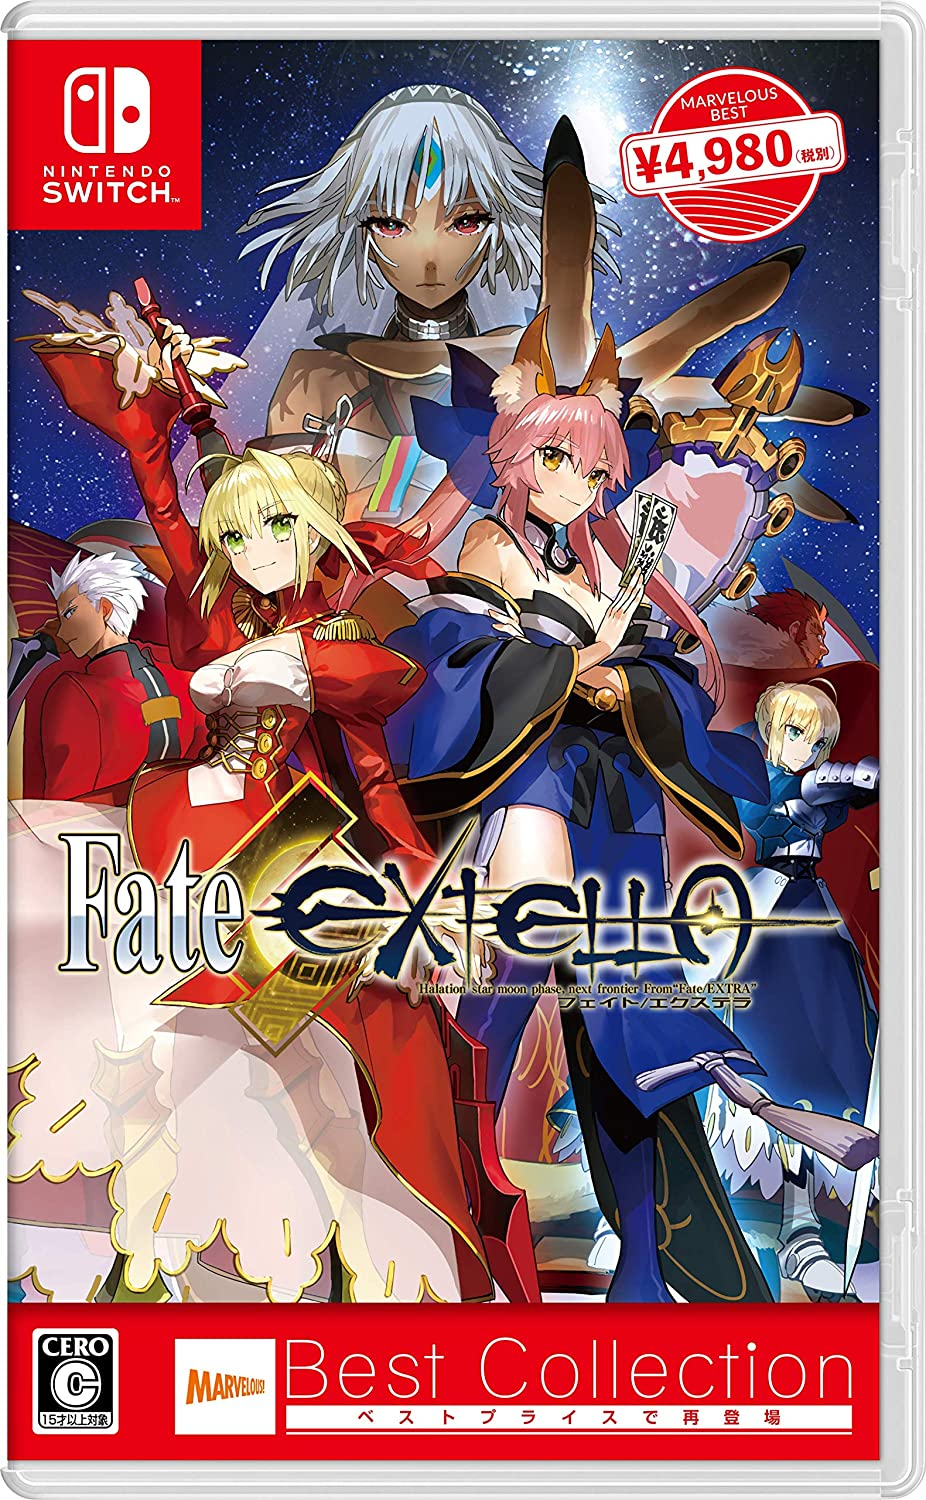 Amazon Co Jp Fate Extella Best Collection Switch Amazon Co Jp限定 オリジナルデジタル壁紙 配信 ゲーム